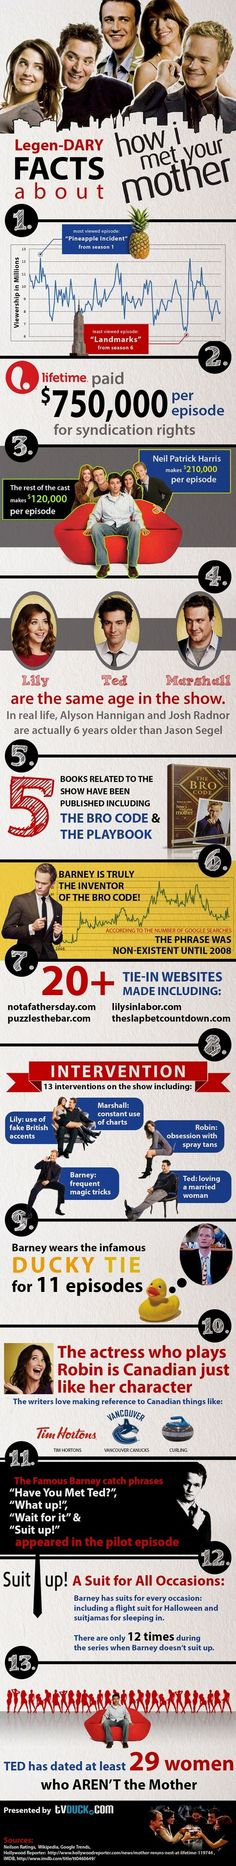 Why is How I Met Your Mother so popular?